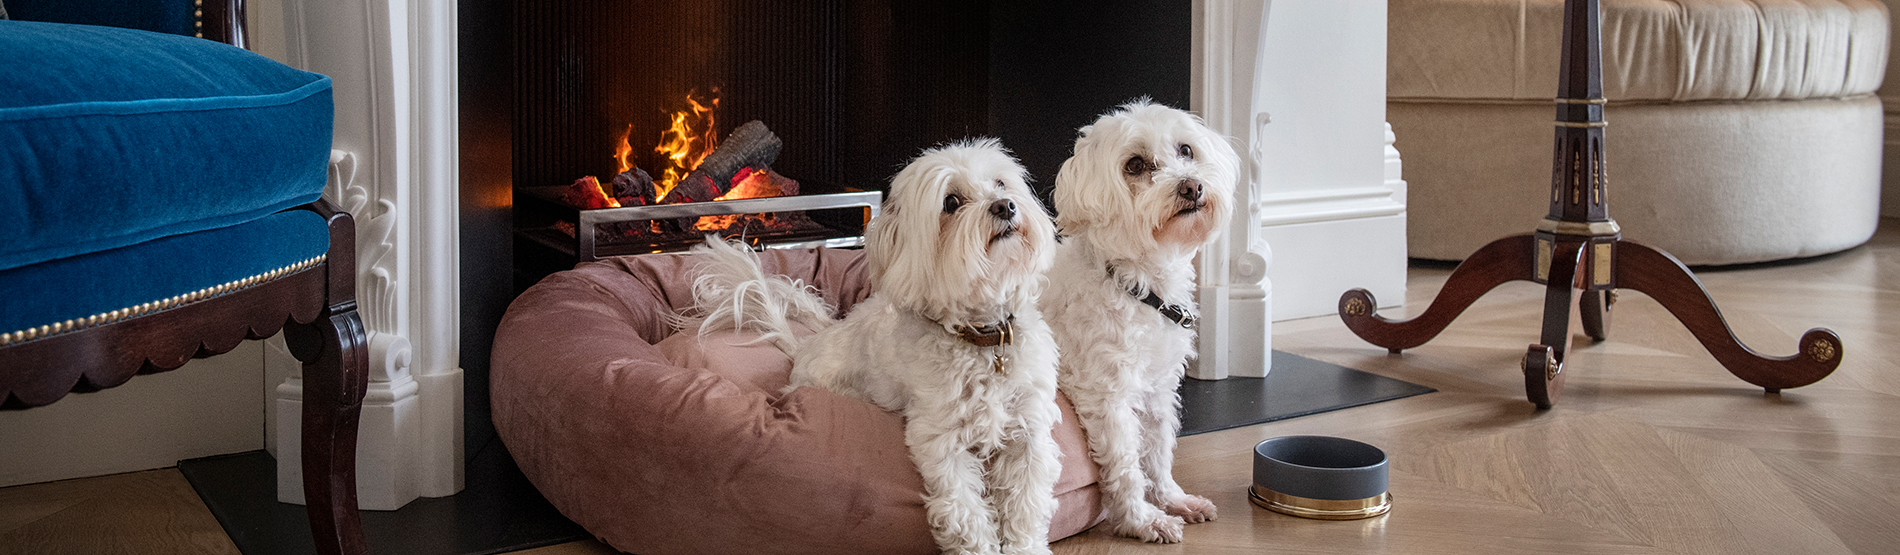 Dogs lying by the fire at the Marylebone